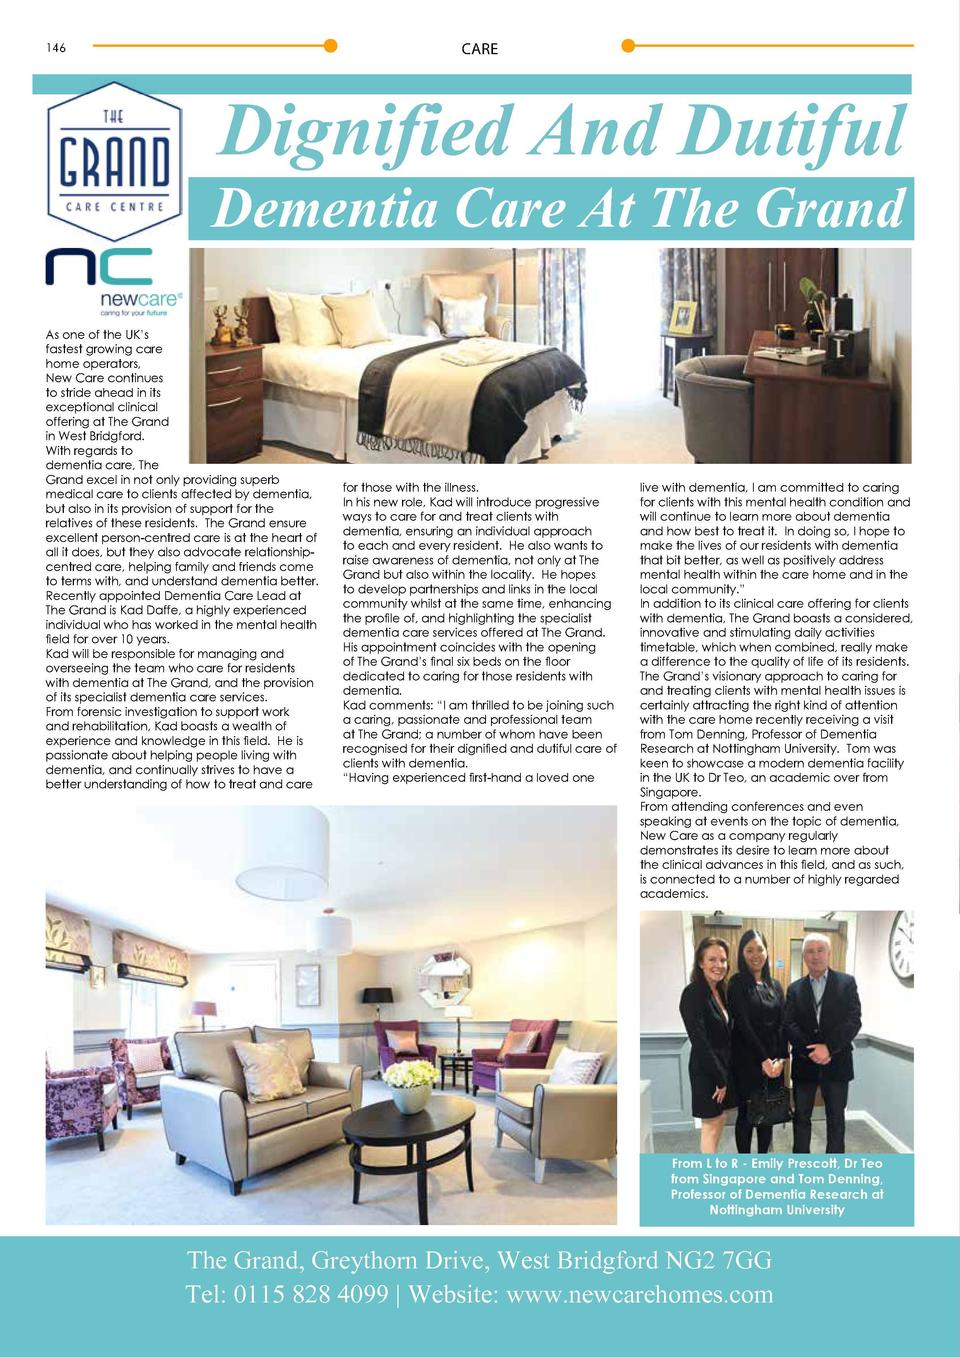 CARE  146  Dignified And Dutiful  Dementia Care At The Grand As one of the UK   s fastest growing care home operators, New...